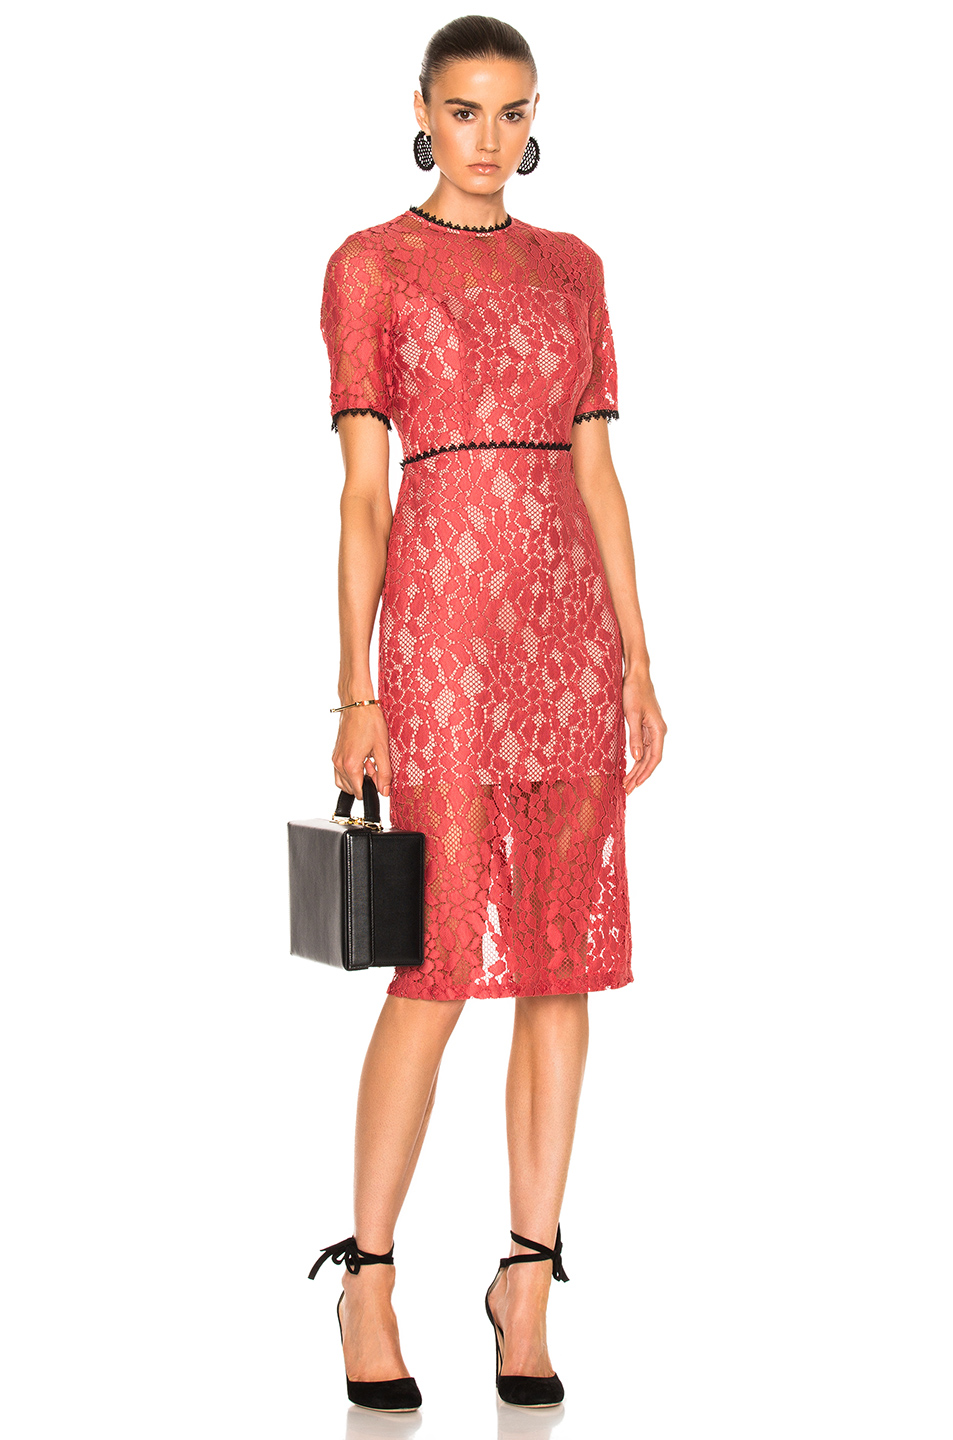 Alexis Remi Dress in Pink,Red